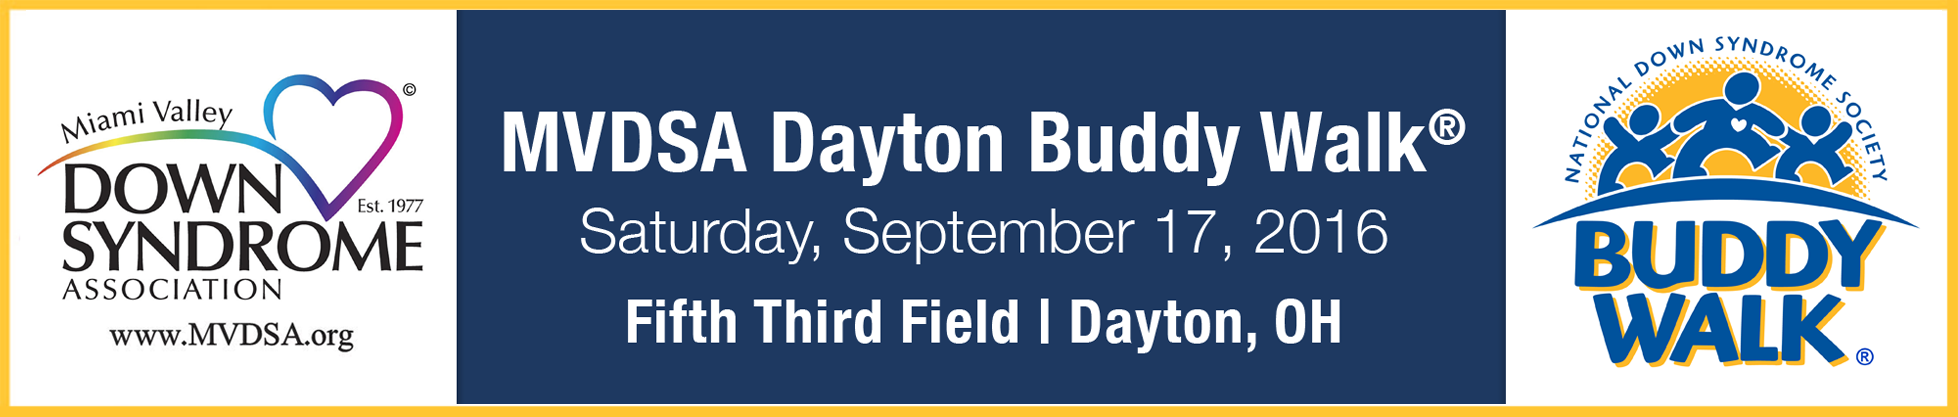 Dayton Buddy Walk